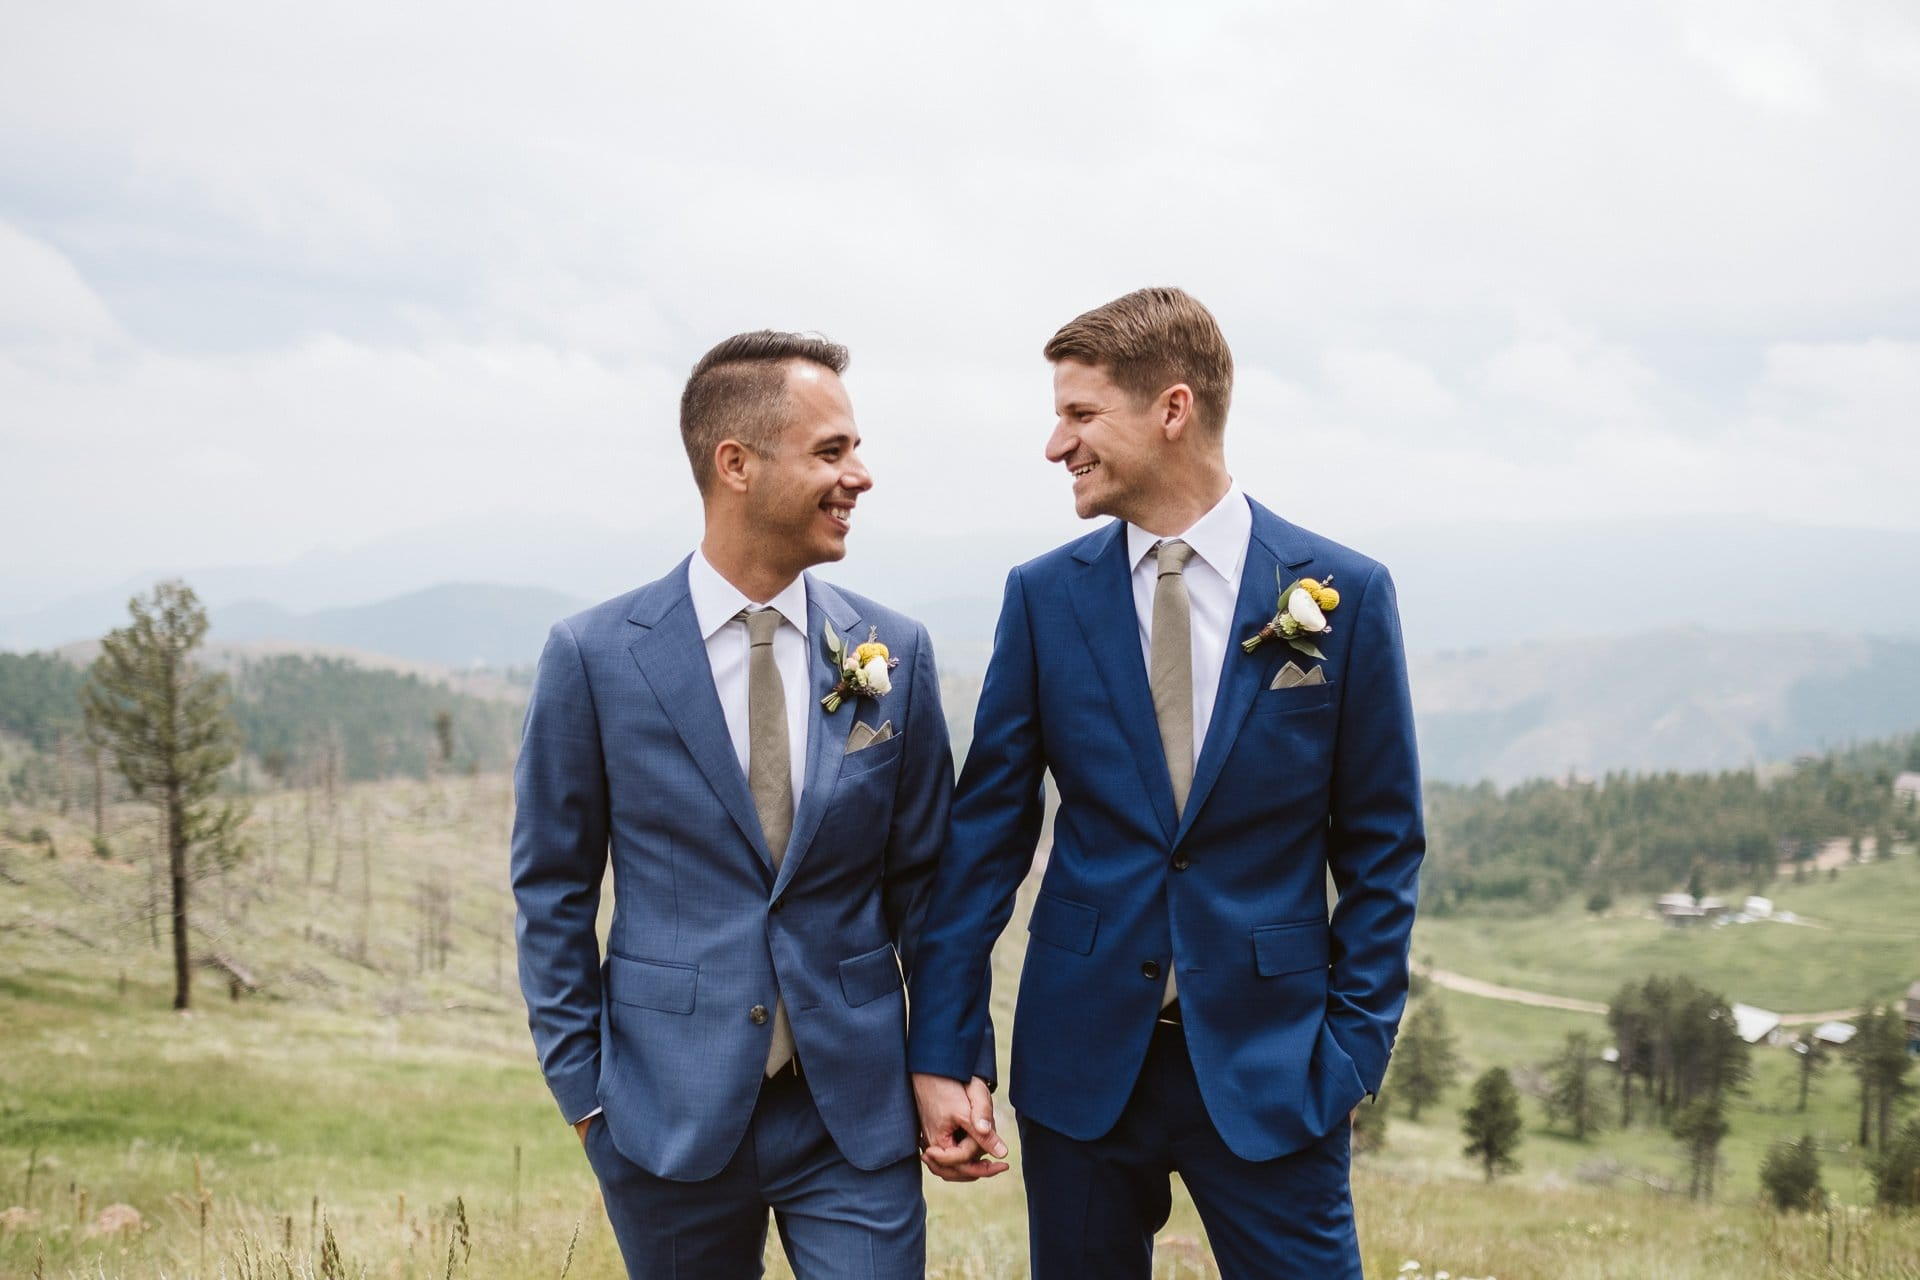 Colorado Mountain Ranch wedding, gay wedding in Colorado, Boulder wedding photographer